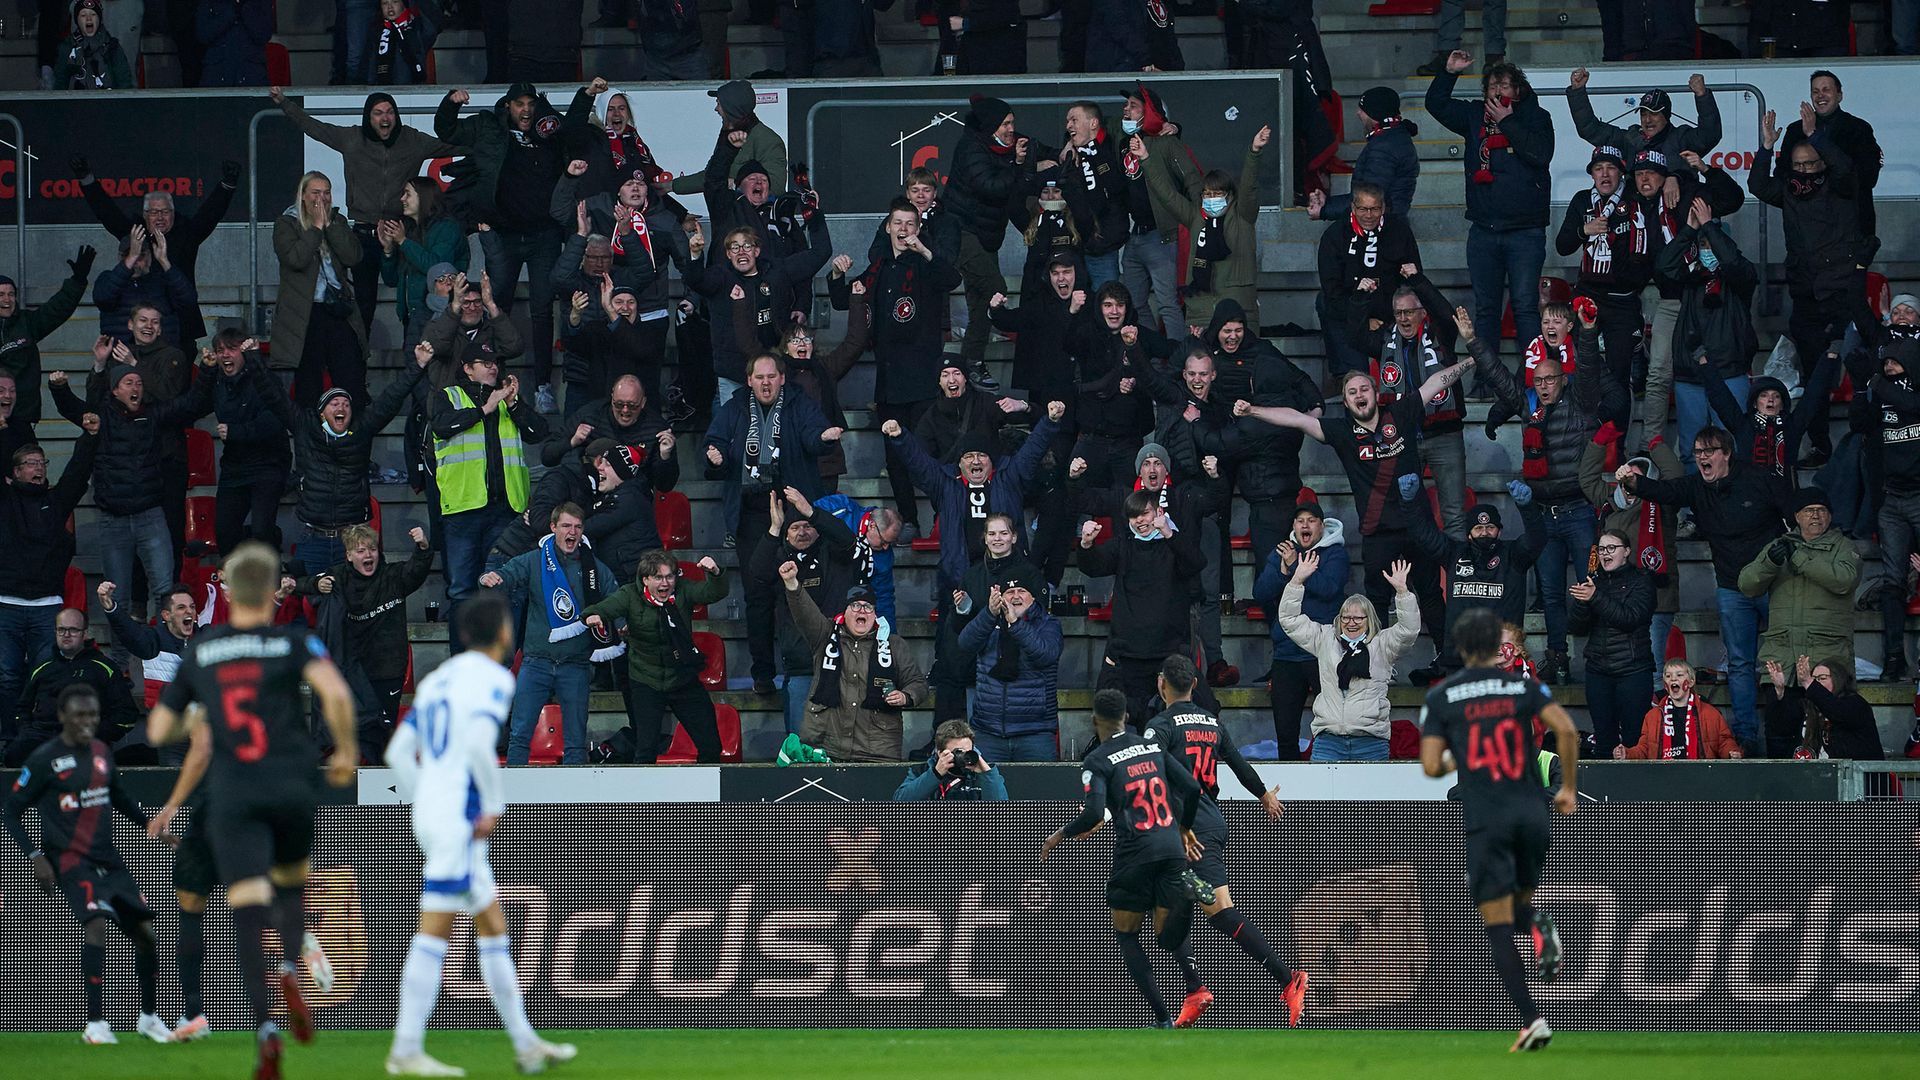 UNFAMILIAR SIGHT: FC Midtjylland fans react as their team goes 1-0 up against  FC Copenhagen last week. Covid passports means supporters can now attend matches - Credit: FrontzoneSport via Getty Images